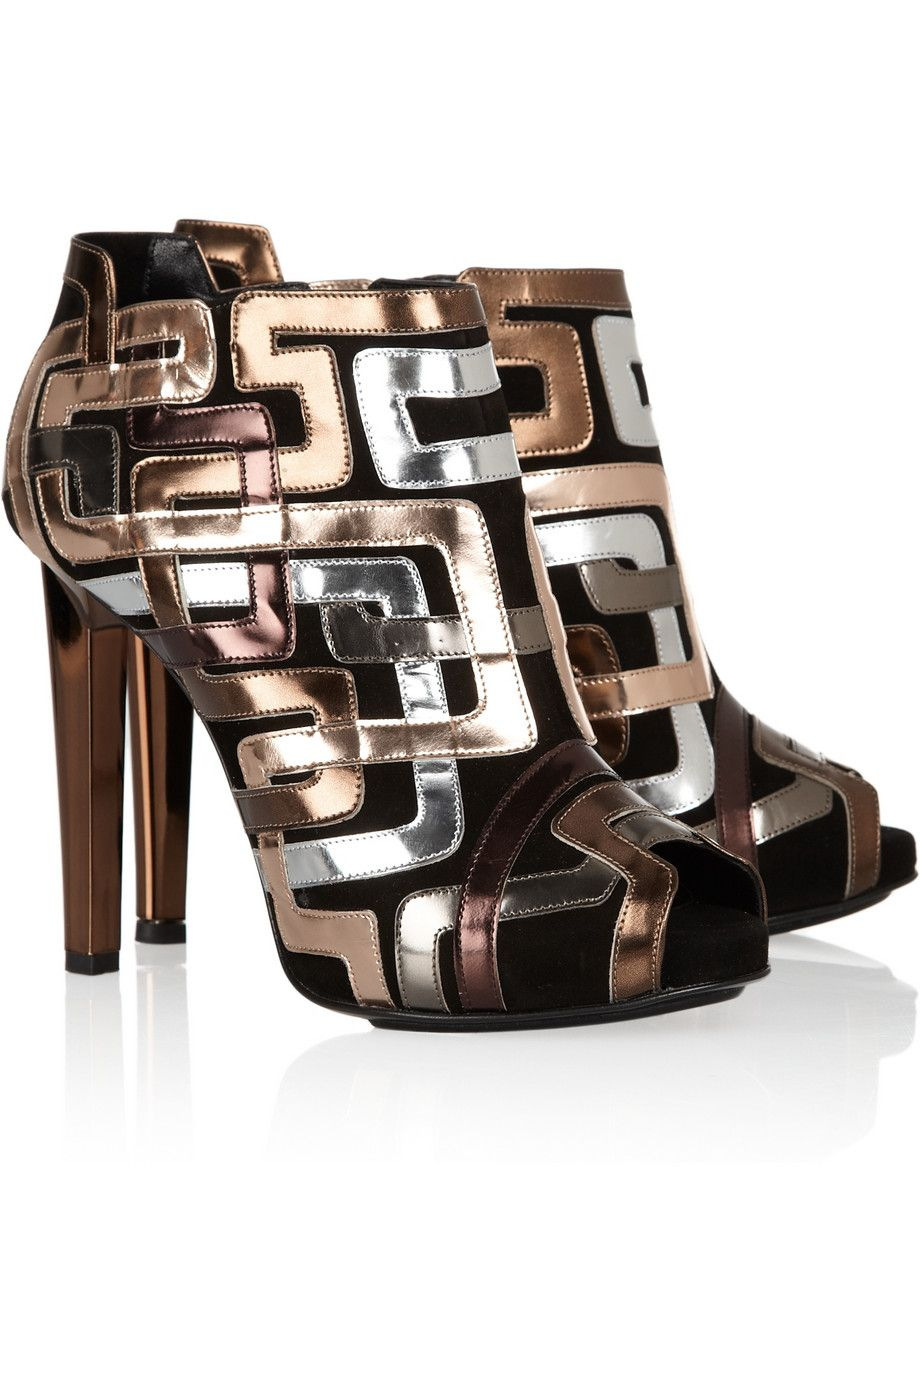 2014 new online Pierre Hardy Metallic-Trimmed Ankle Boots fast delivery cheap online free shipping shop for W3g55xvDem